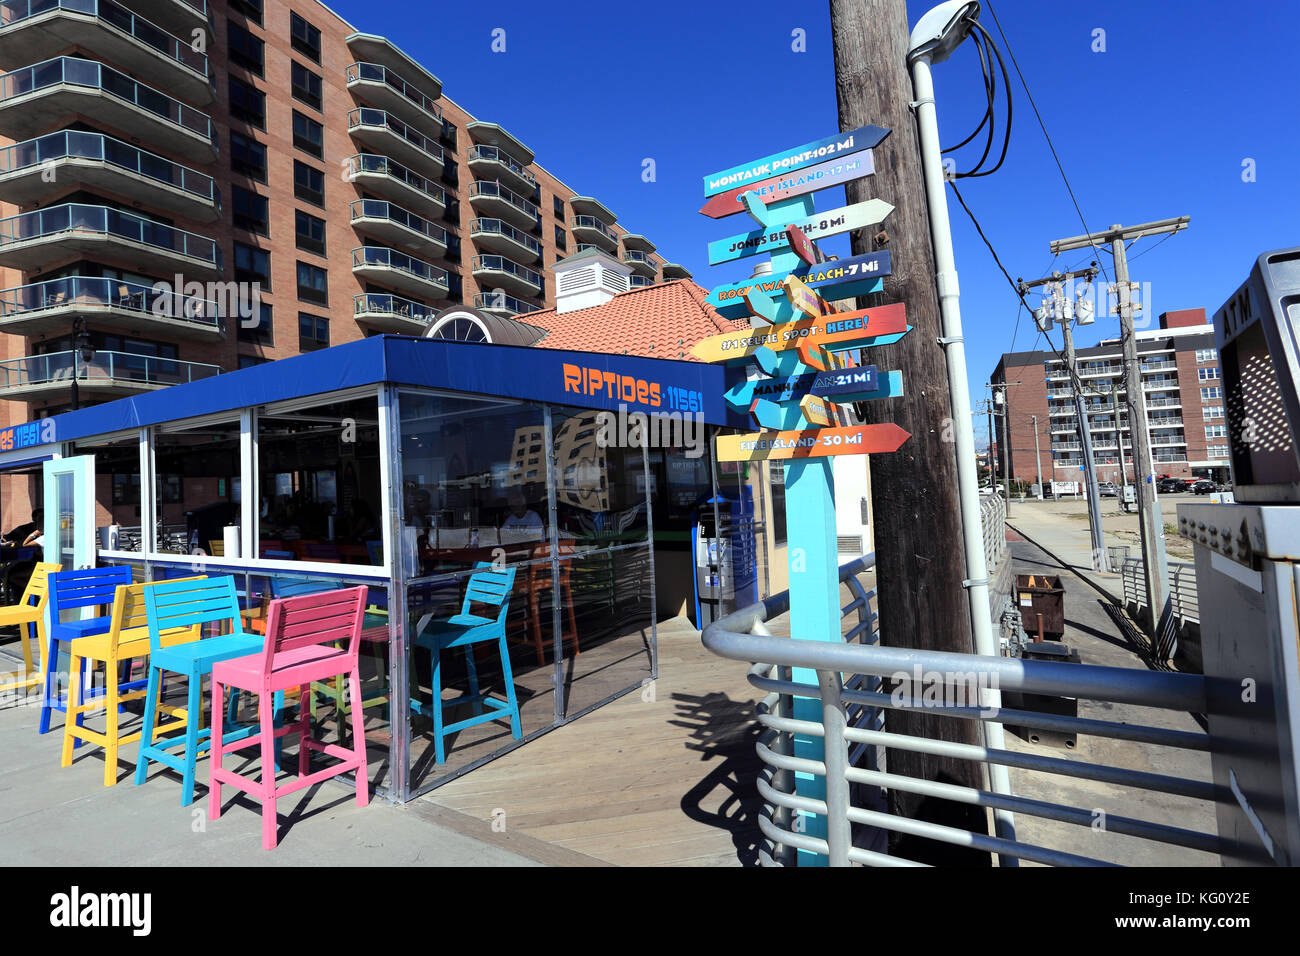 Restaurant And Snack Bar On The Boardwalk At Long Beach Long Island Stock Photo Alamy